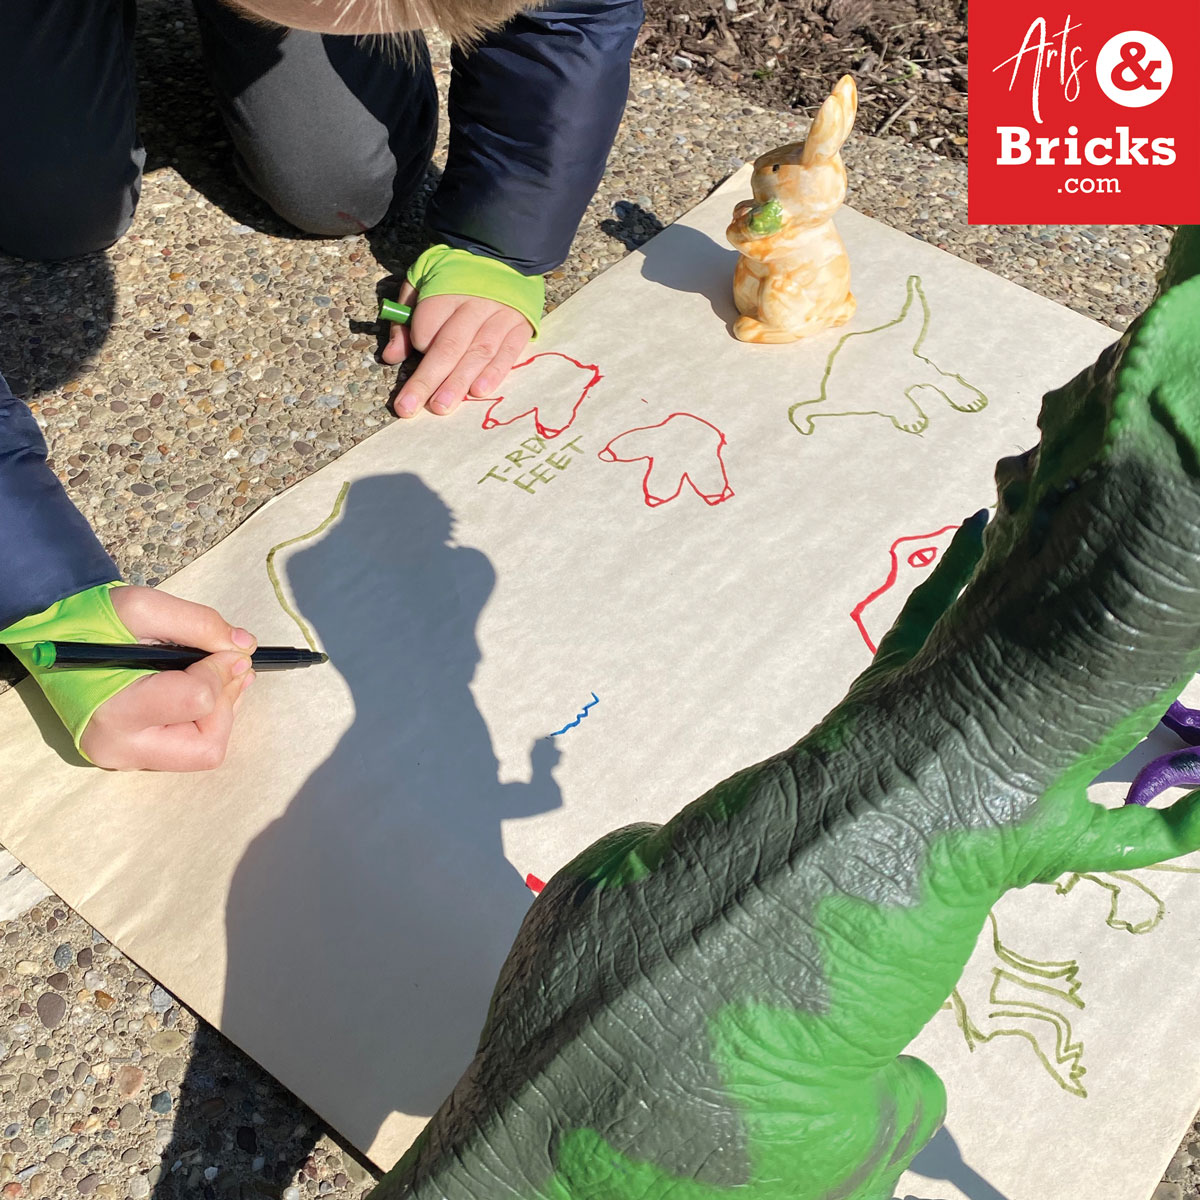 Explore the shadows that your toys make in the afternoon sun; simple art project outdoors.